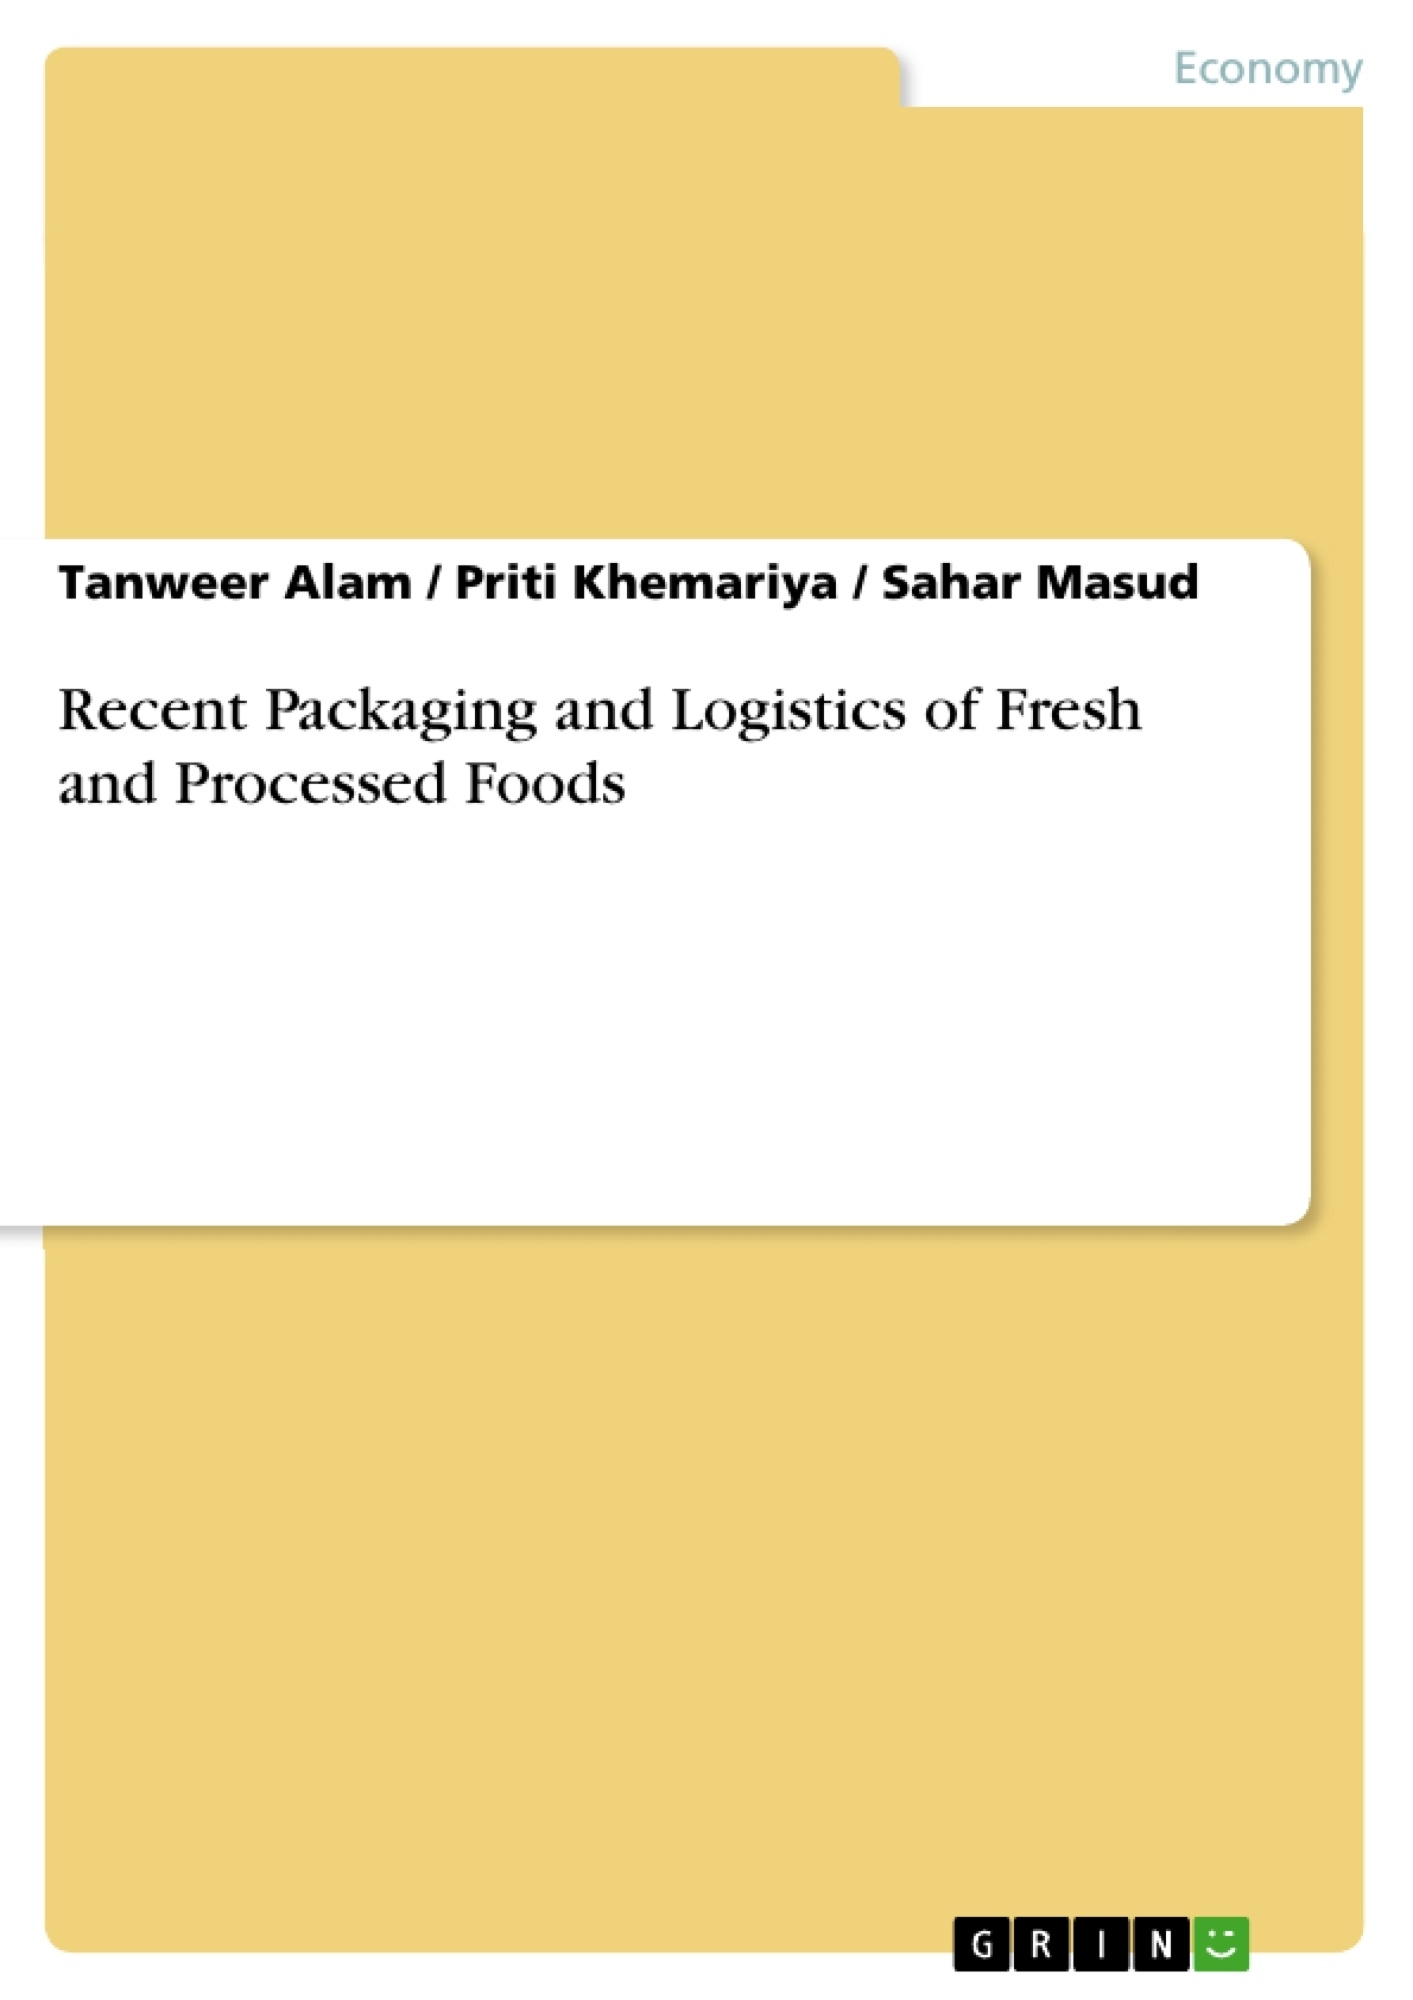 Title: Recent Packaging and Logistics of Fresh and Processed Foods